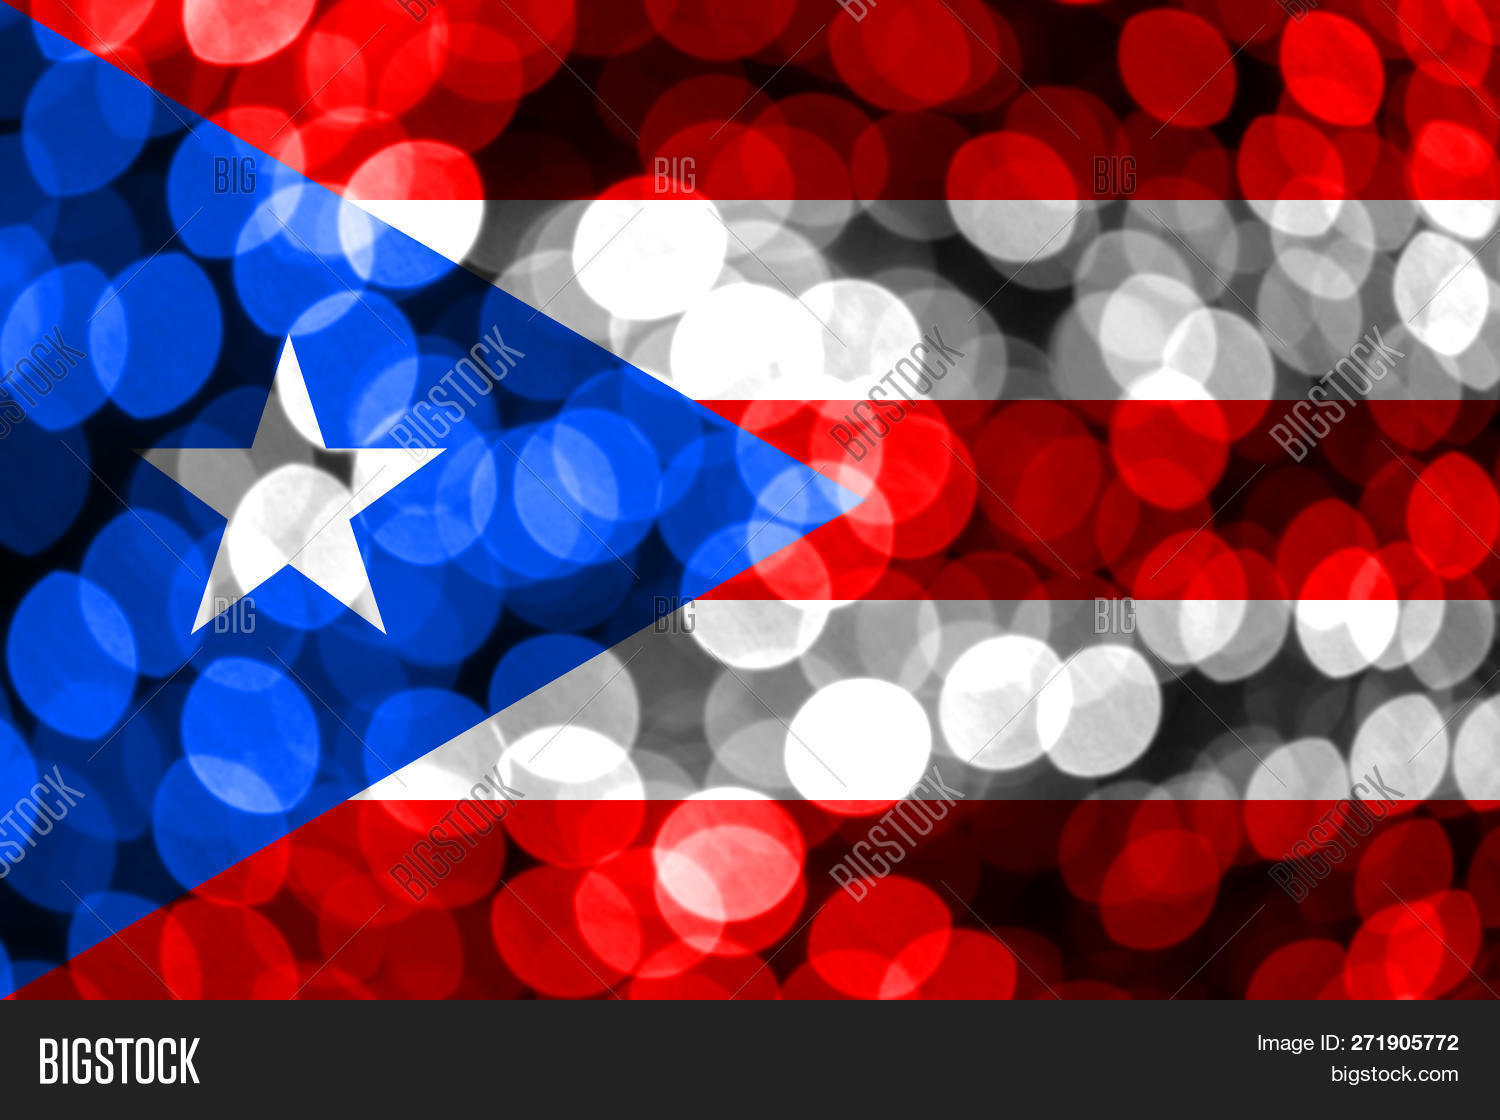 Puerto Rico Abstract Image Photo Free Trial Bigstock